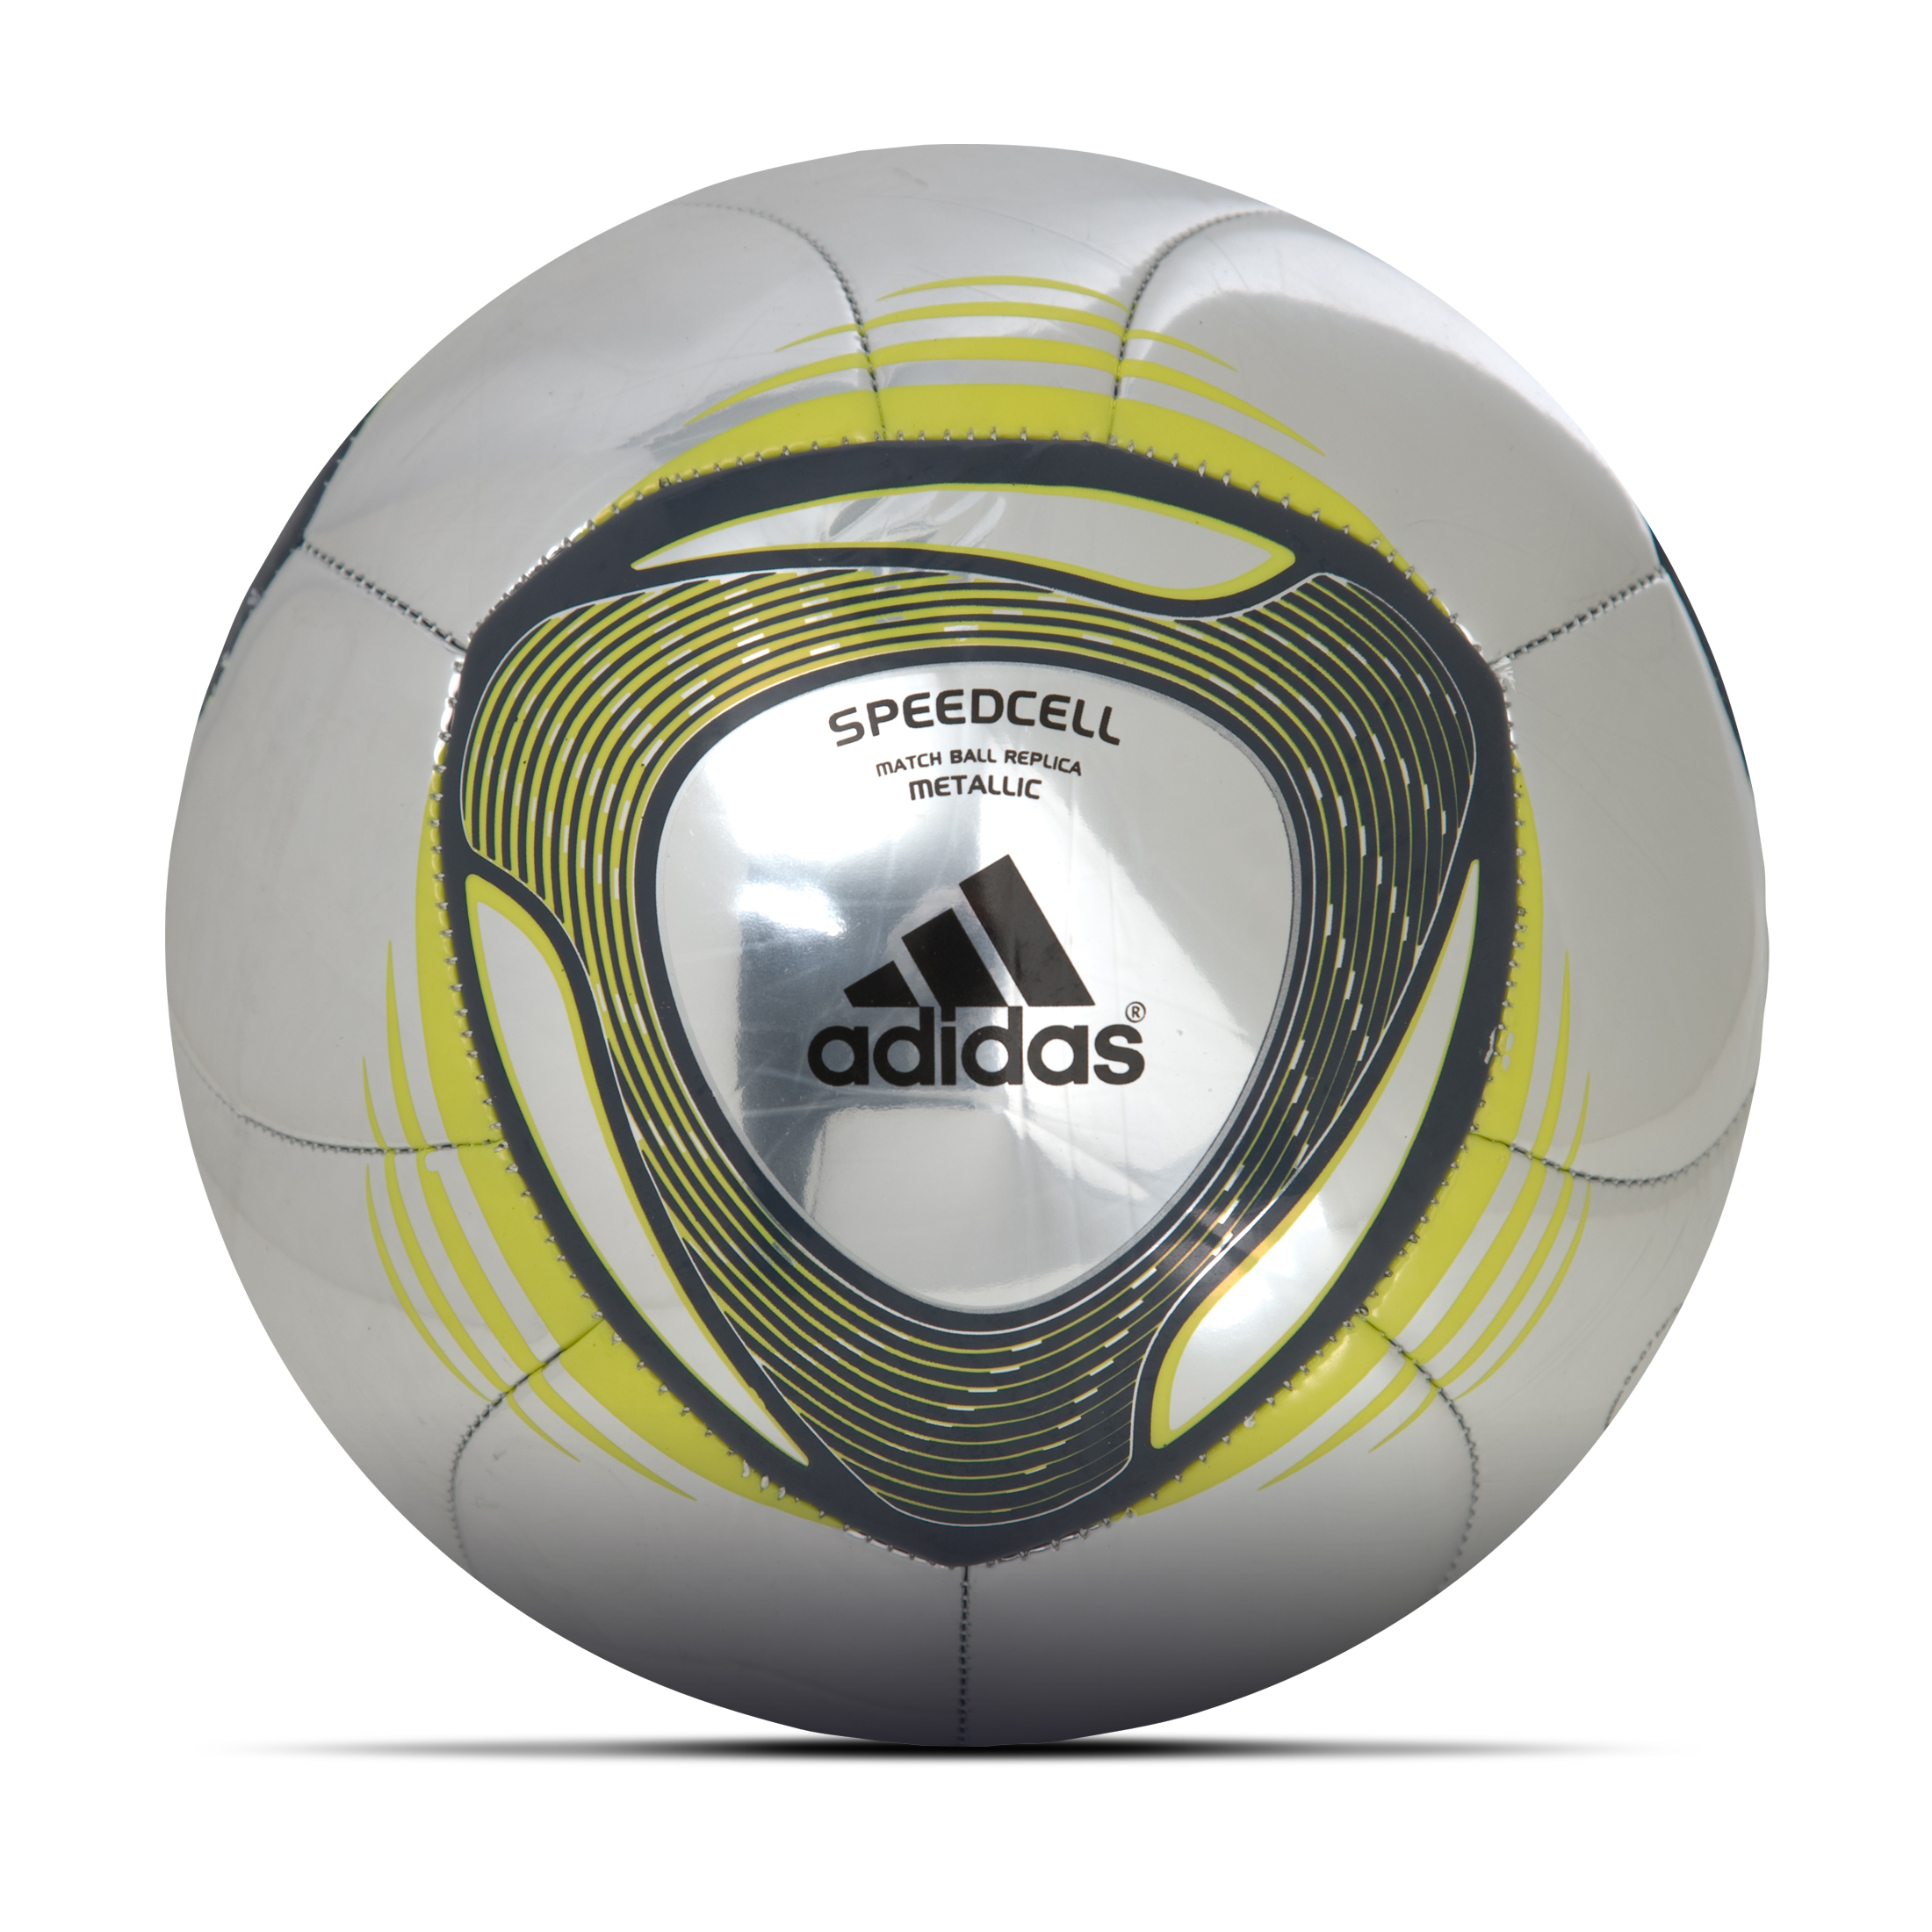 adidas 2011 Metallic Football - Metallic Silver/Dark Shale/Lemon Peel